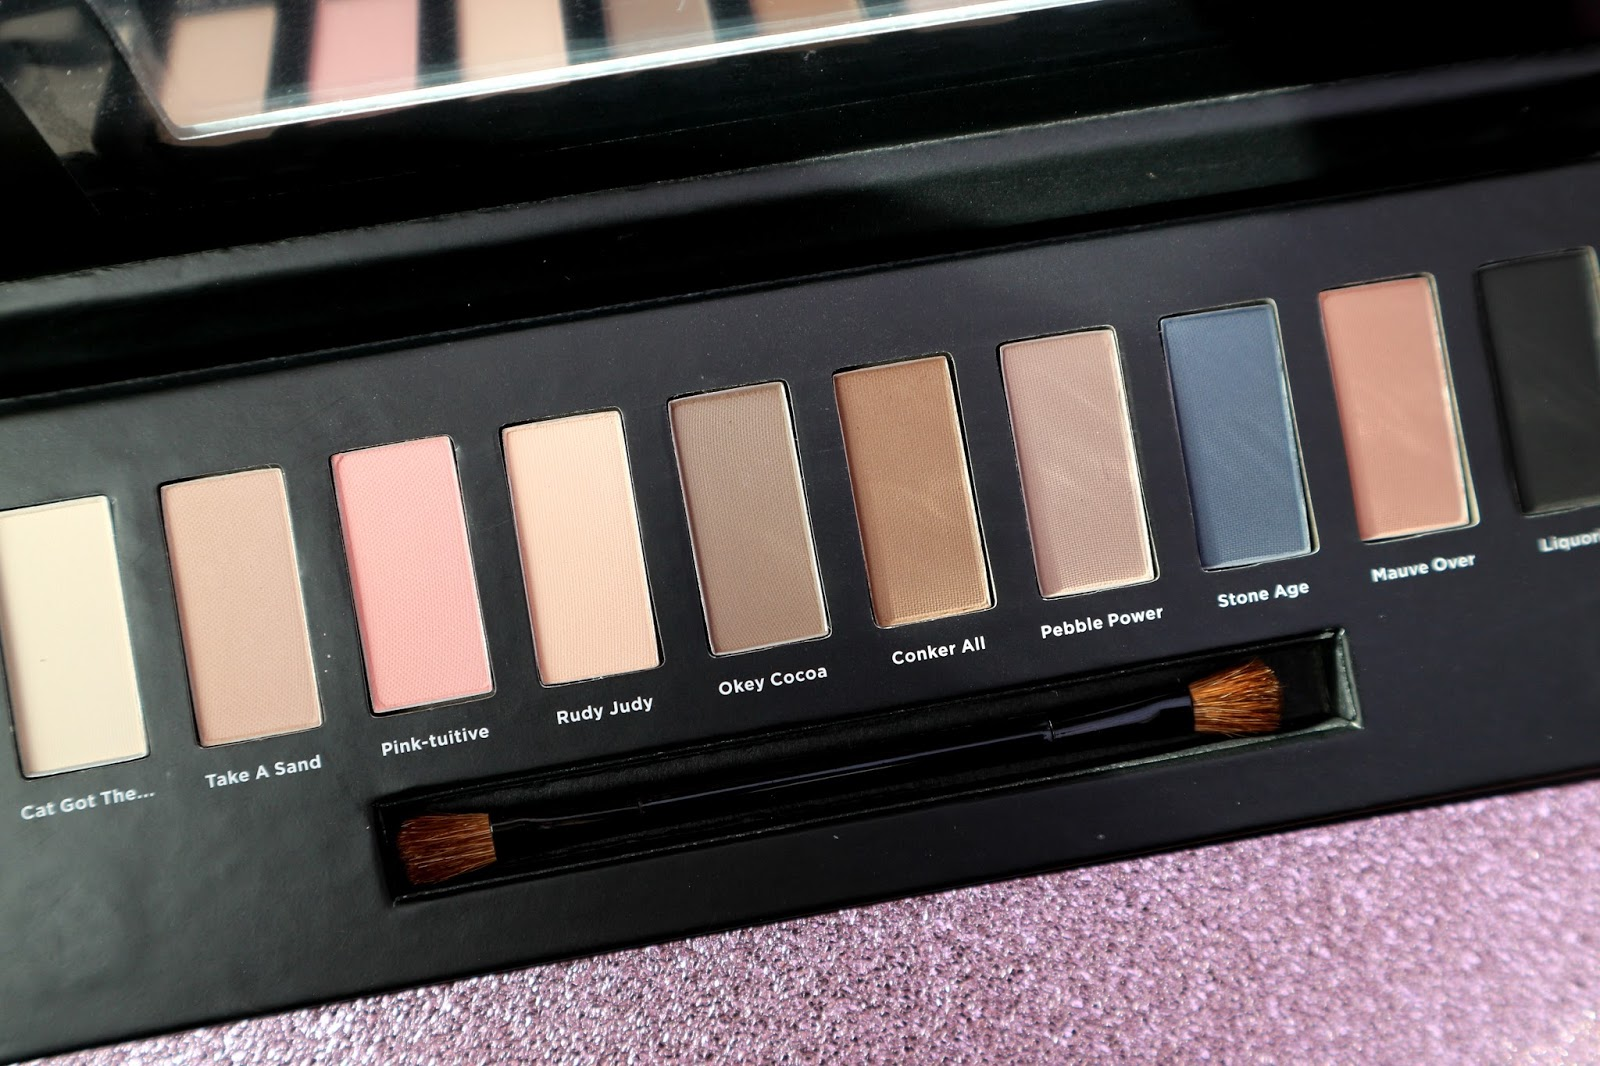 Soap & Glory The Ultimatte Collection Eyeshadow Palette